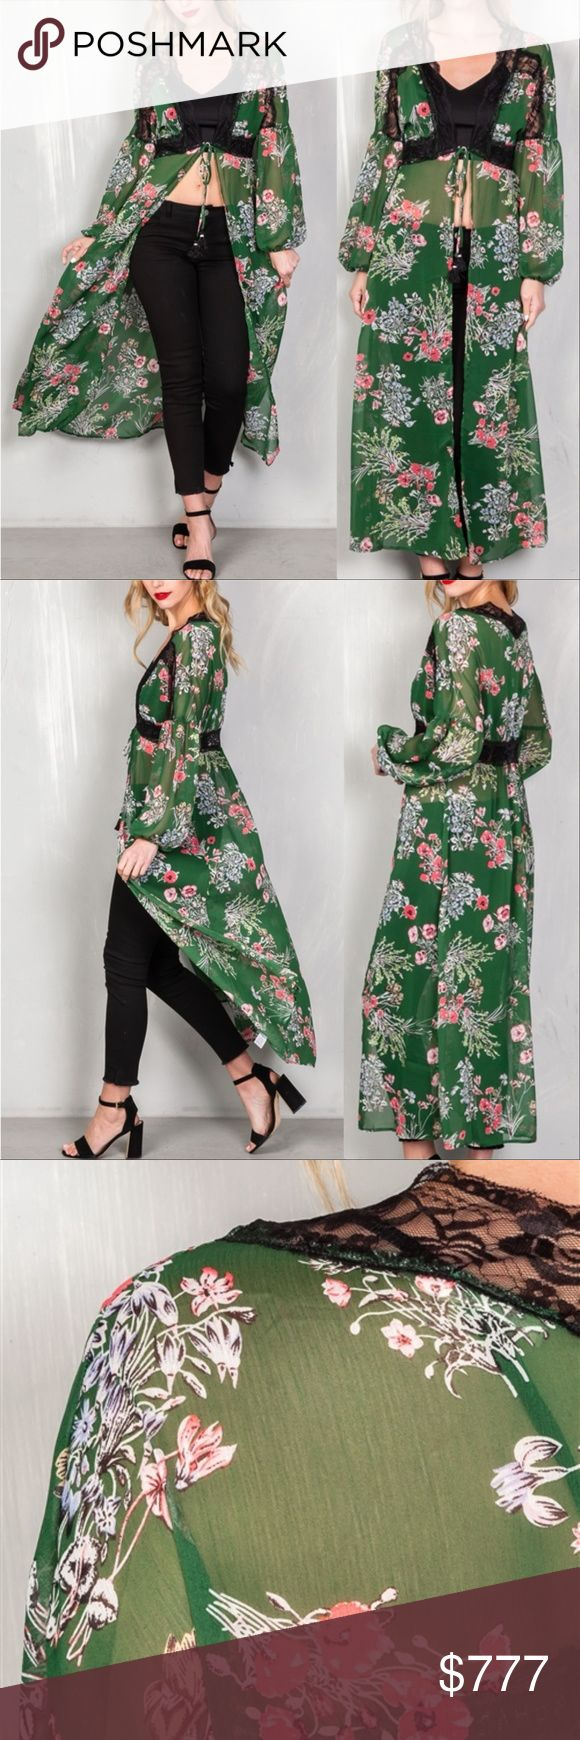 "'FLORAL VIBES' SHEER KIMONO / DUSTER WE ARE AN ONLINE BOUTIQUE ALL ITEMS ARE BRAND NEW PRICING IS FIRM  This beautiful green sheer chiffon Kimono / duster features: longline silhouette, lace trim around neckline, waist lace detail, all over floral print,  long sleeves & front tie. You can wear over a dress, with a top & pants, or over your swimsuit!  Model is 5'9 and wearing a Small ( Waist 24"", Bust: 34B, Hips: 37"")  * Bikini cover up vacation cruise party hippy boho bohemian 70's Coachella…"